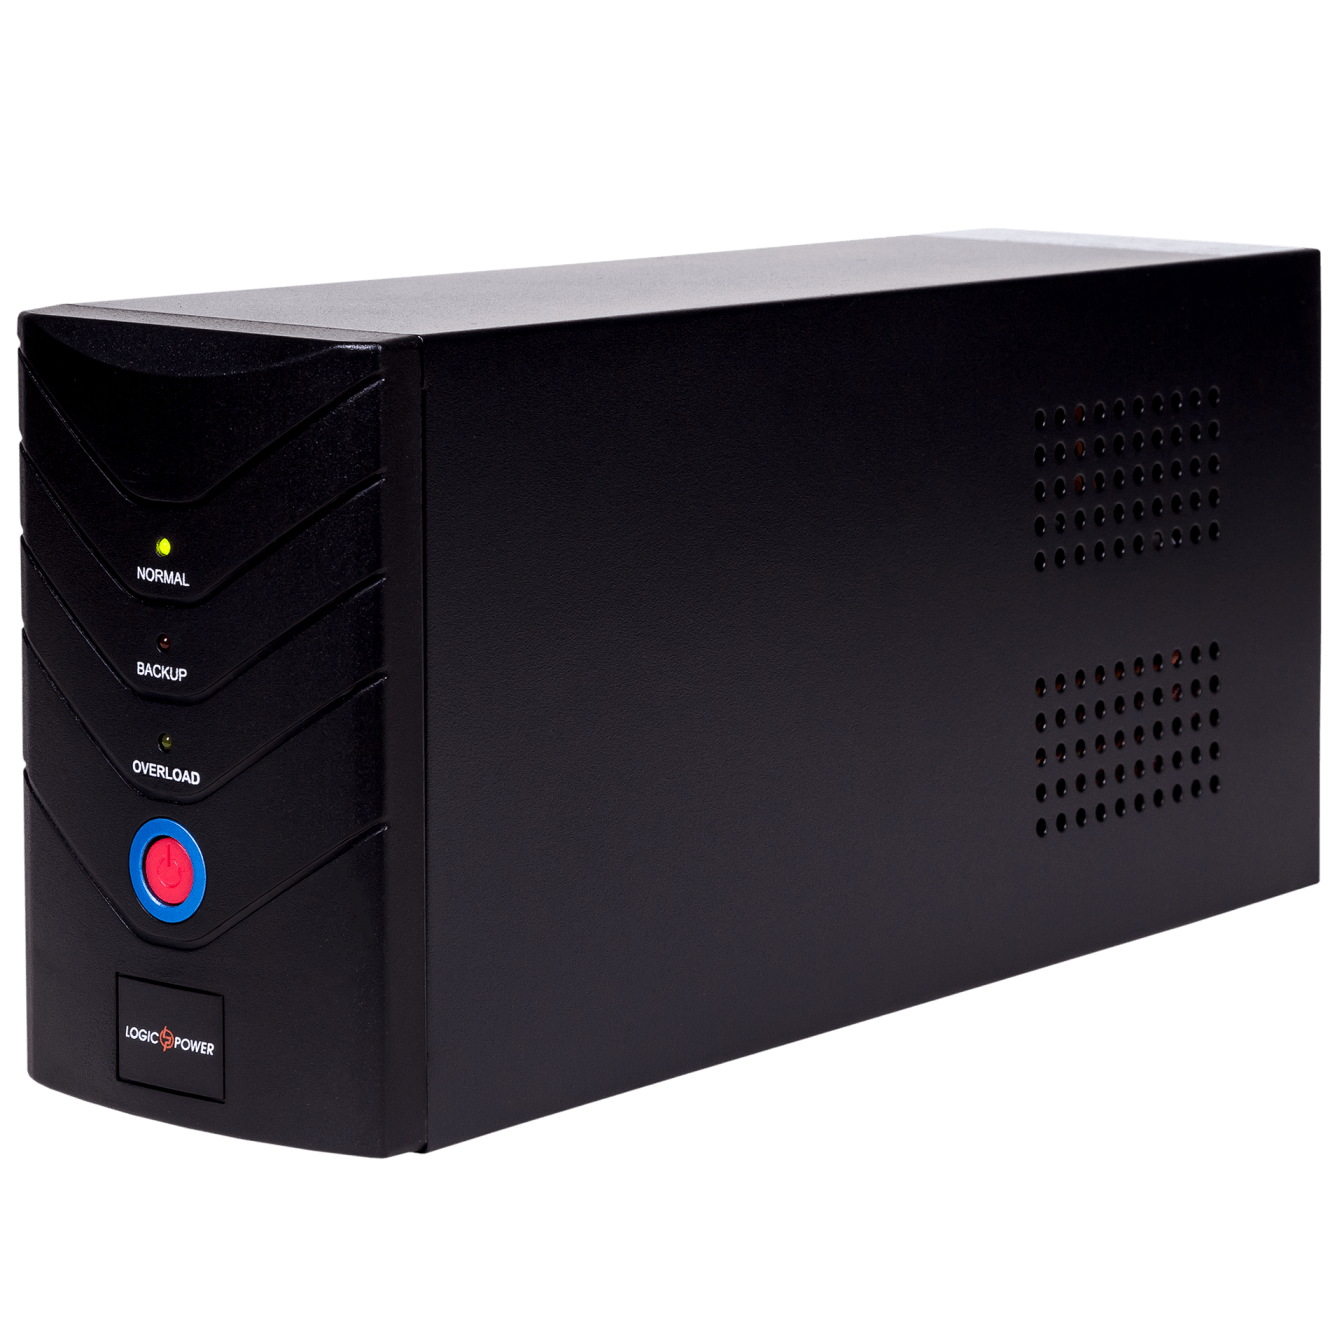 ИБП LogicPower LP 1200VA AVR